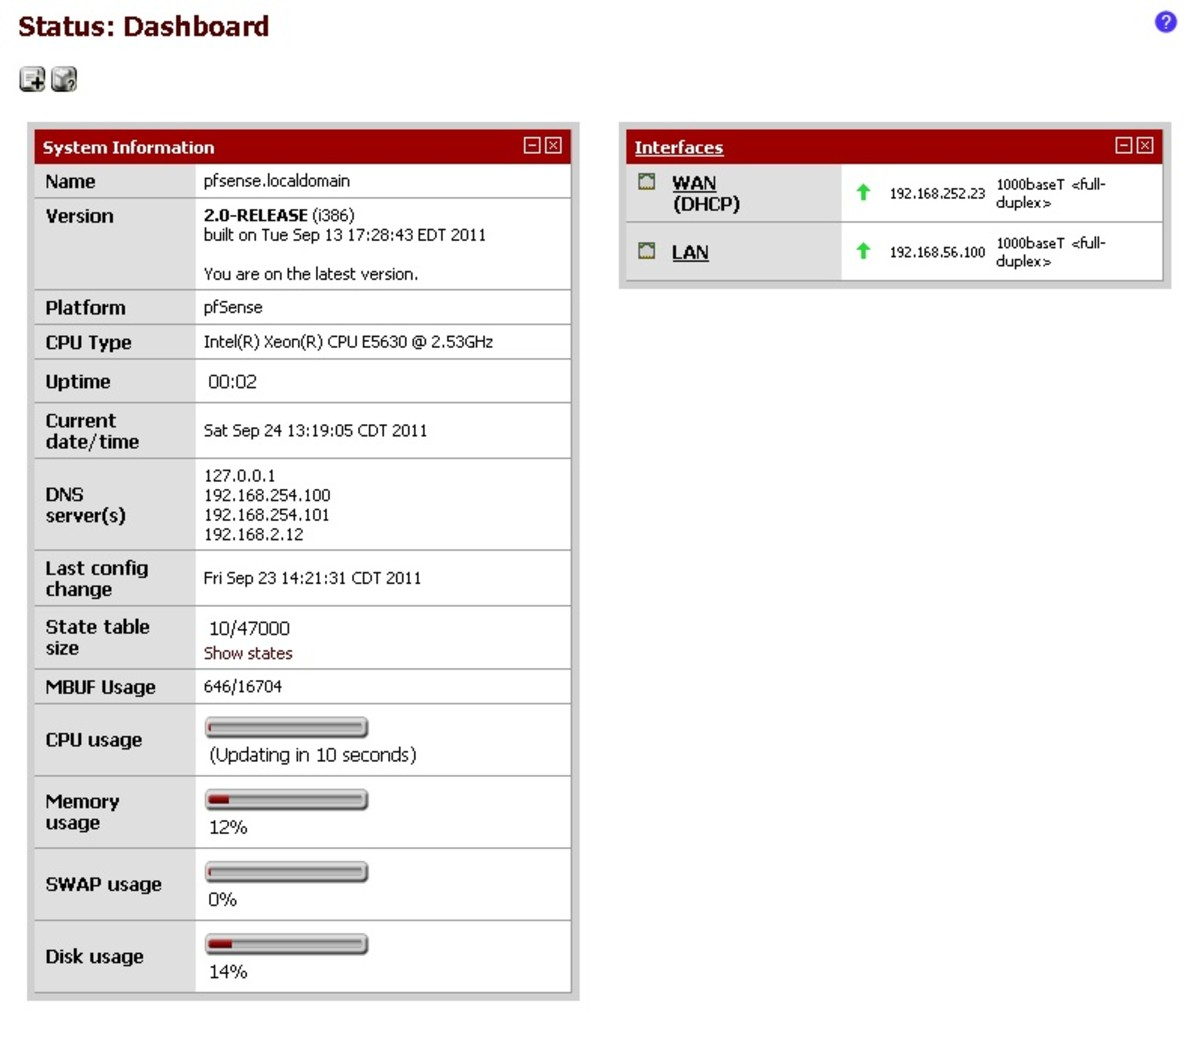 PfSense will reboot after the upgrade, the dashboard will let you know if you are running on the most recent release.